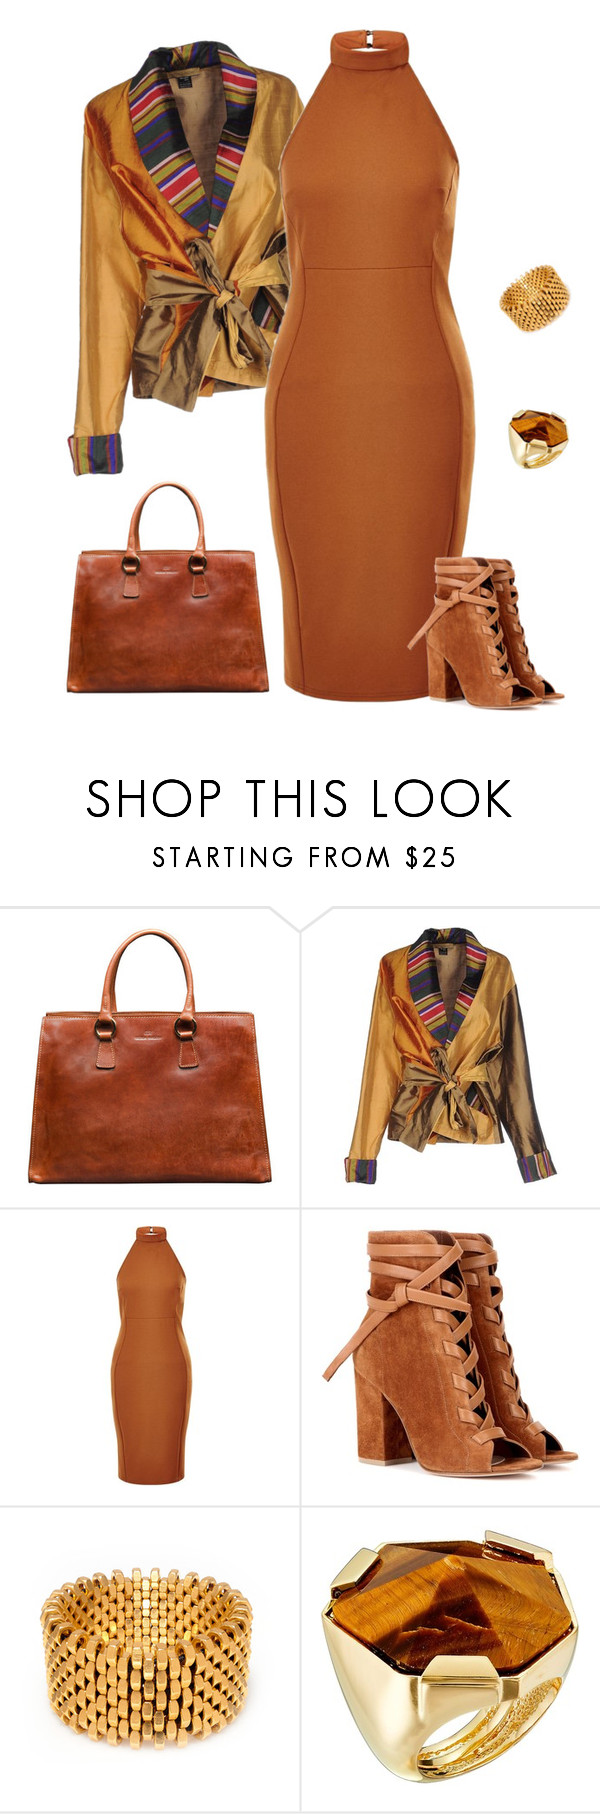 """""""outfit 3531"""" by natalyag ❤ liked on Polyvore featuring Gianvito Rossi, Alice Menter and Vince Camuto"""